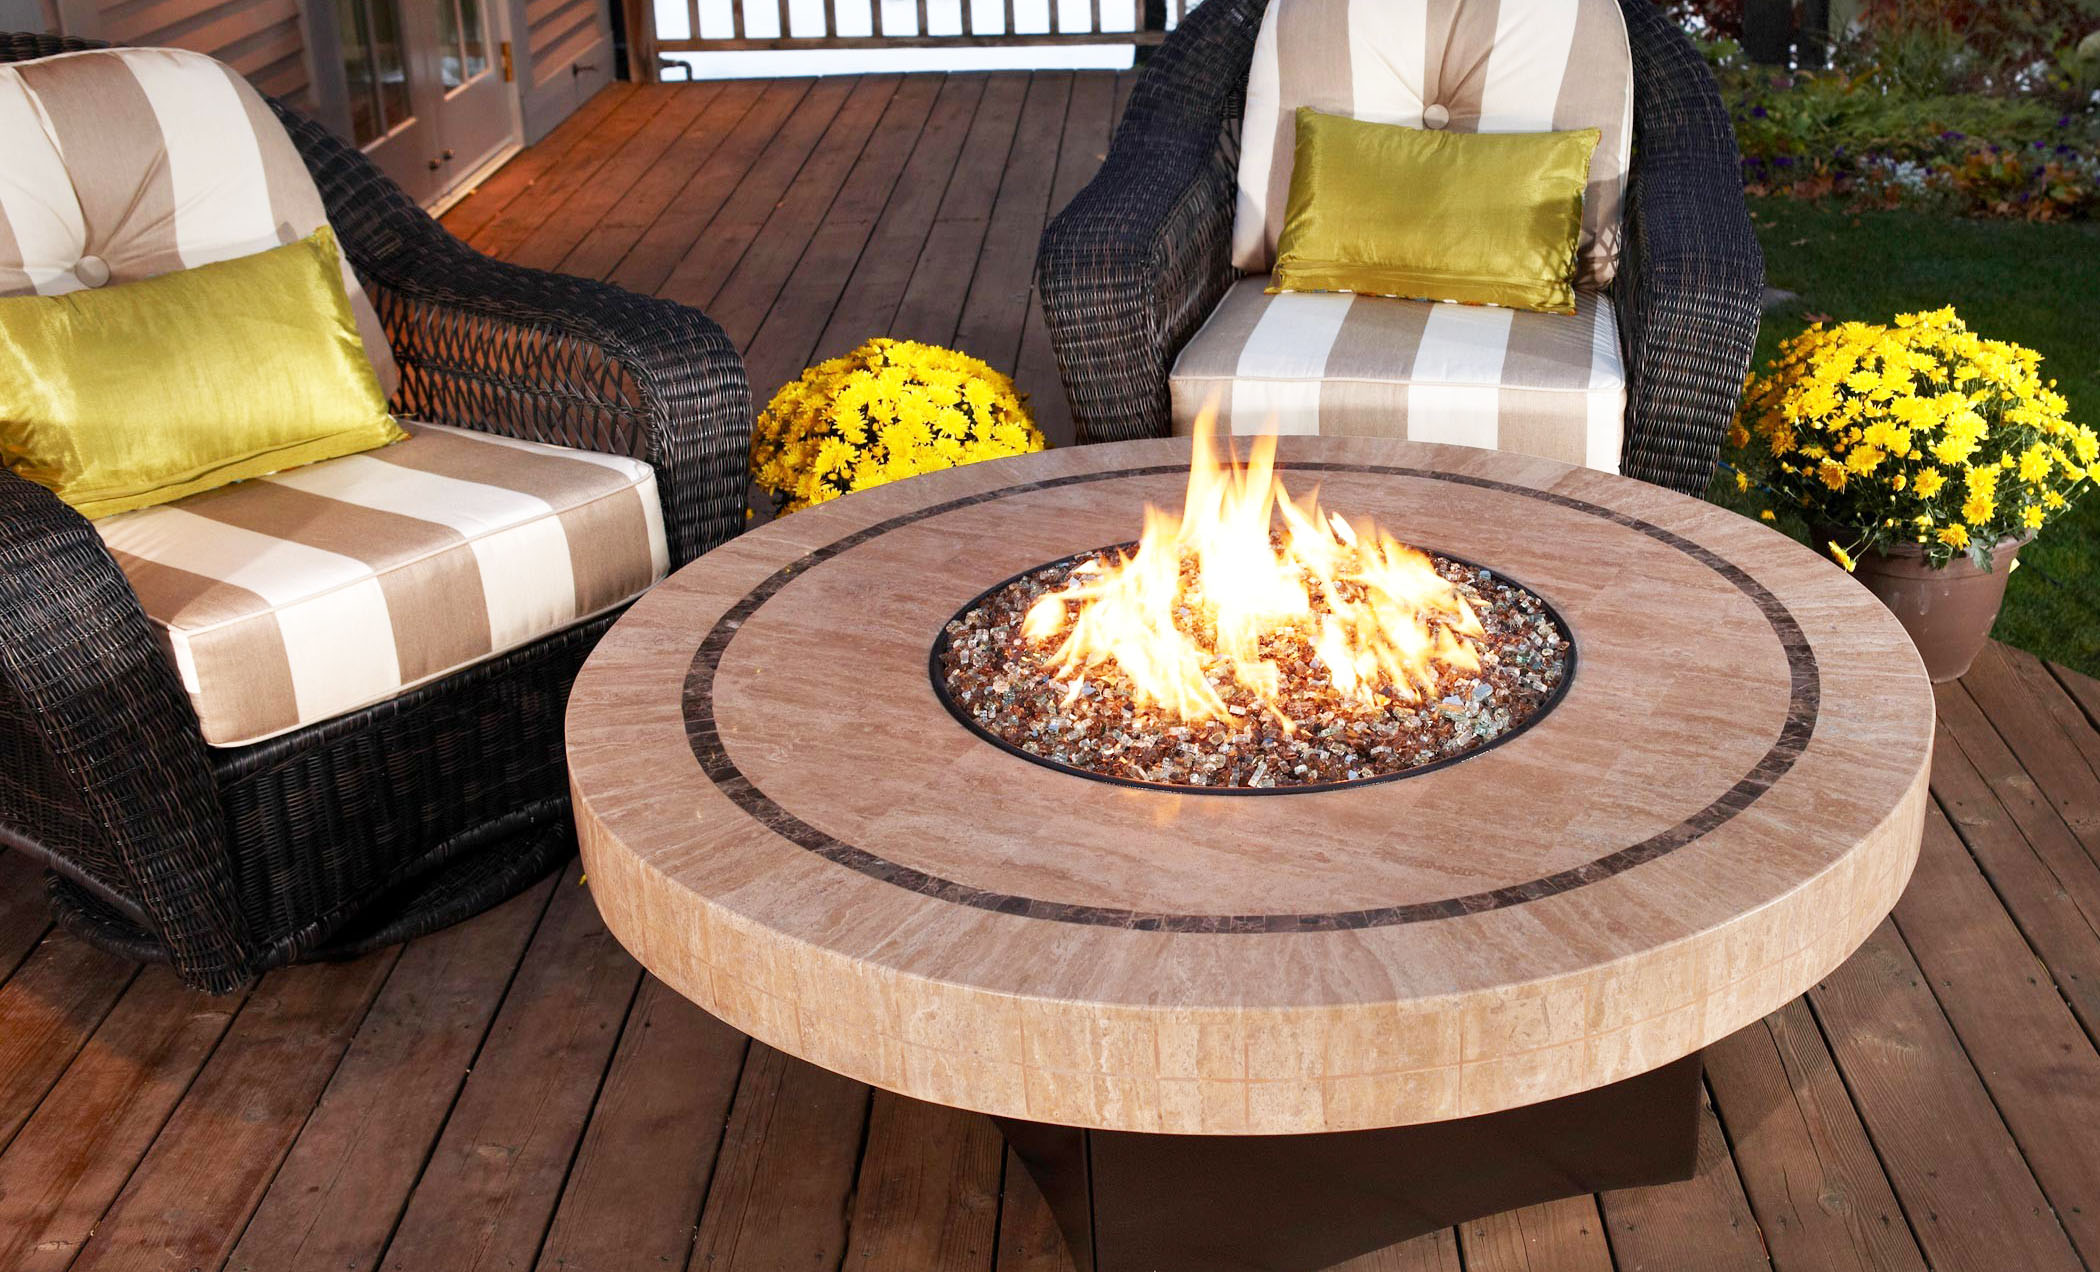 How to Make Tabletop Fire Pit Kit DIY